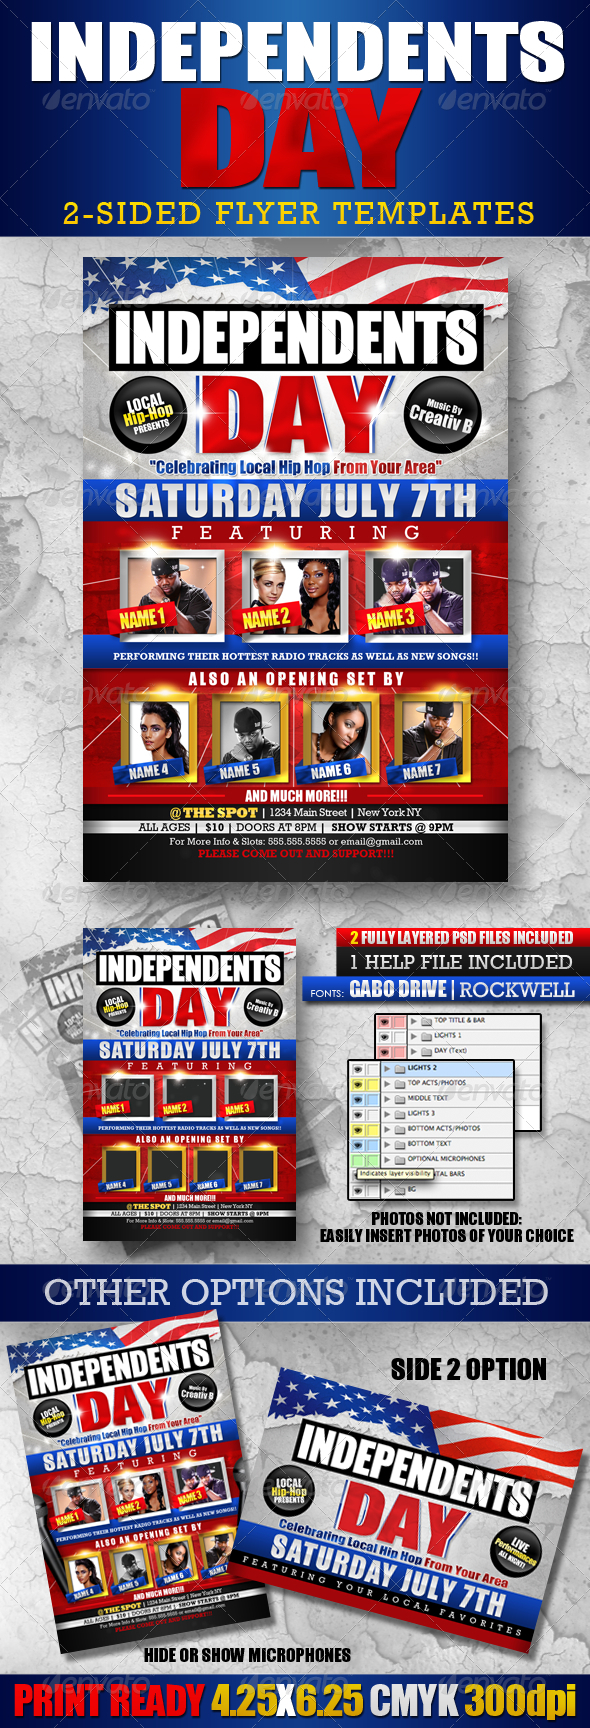 GraphicRiver Independents Day Flyer Templates 2026426